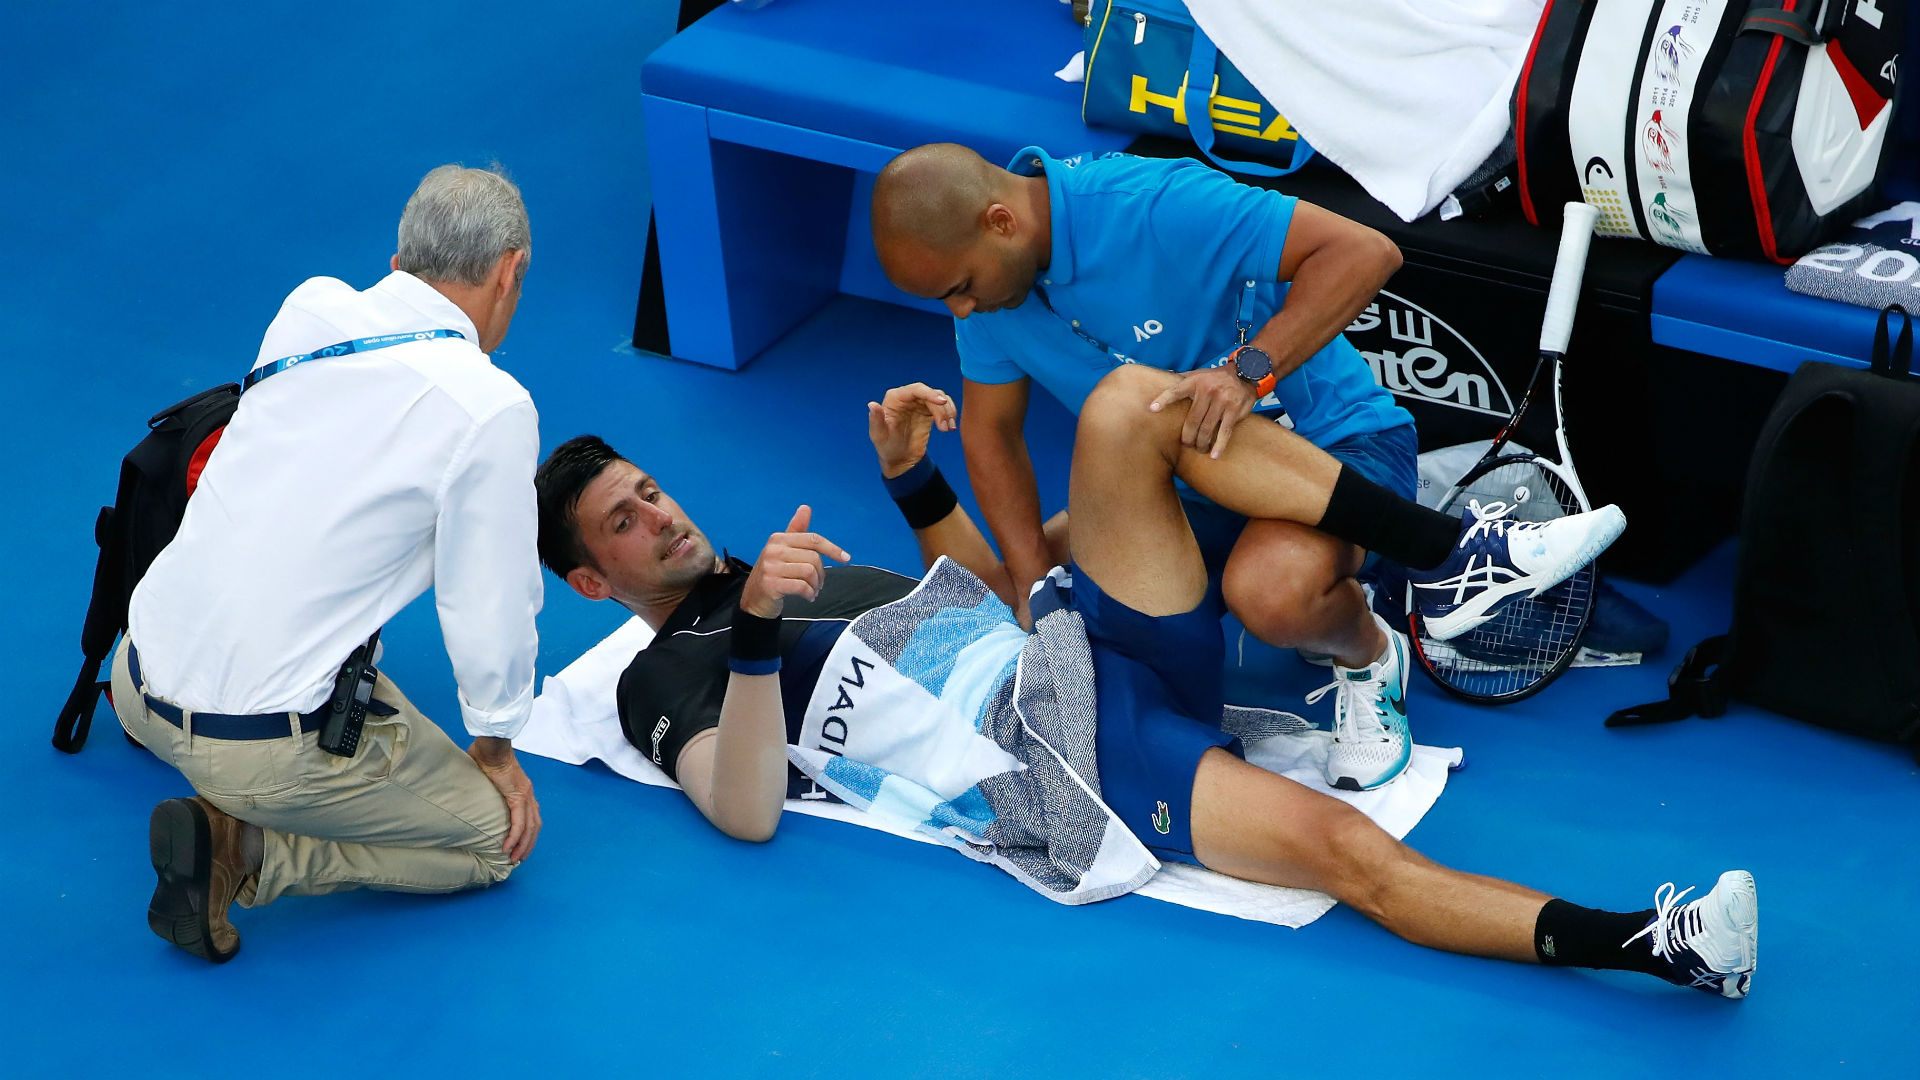 Djokovic overcomes injury scare, defeats Viñolas at Australian Open